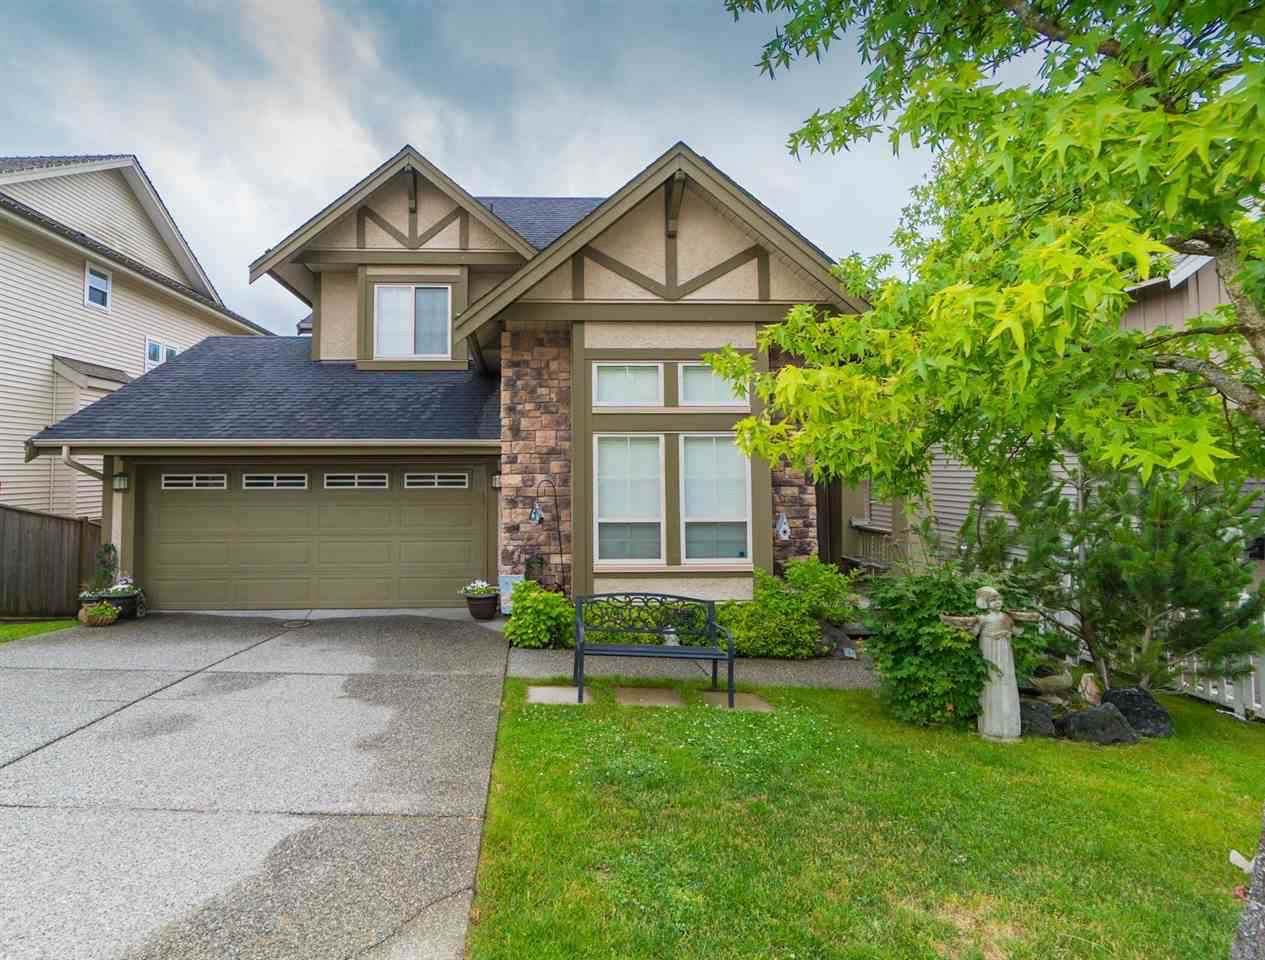 Main Photo: 153 SYCAMORE Drive in Port Moody: Heritage Woods PM House for sale : MLS®# R2426833